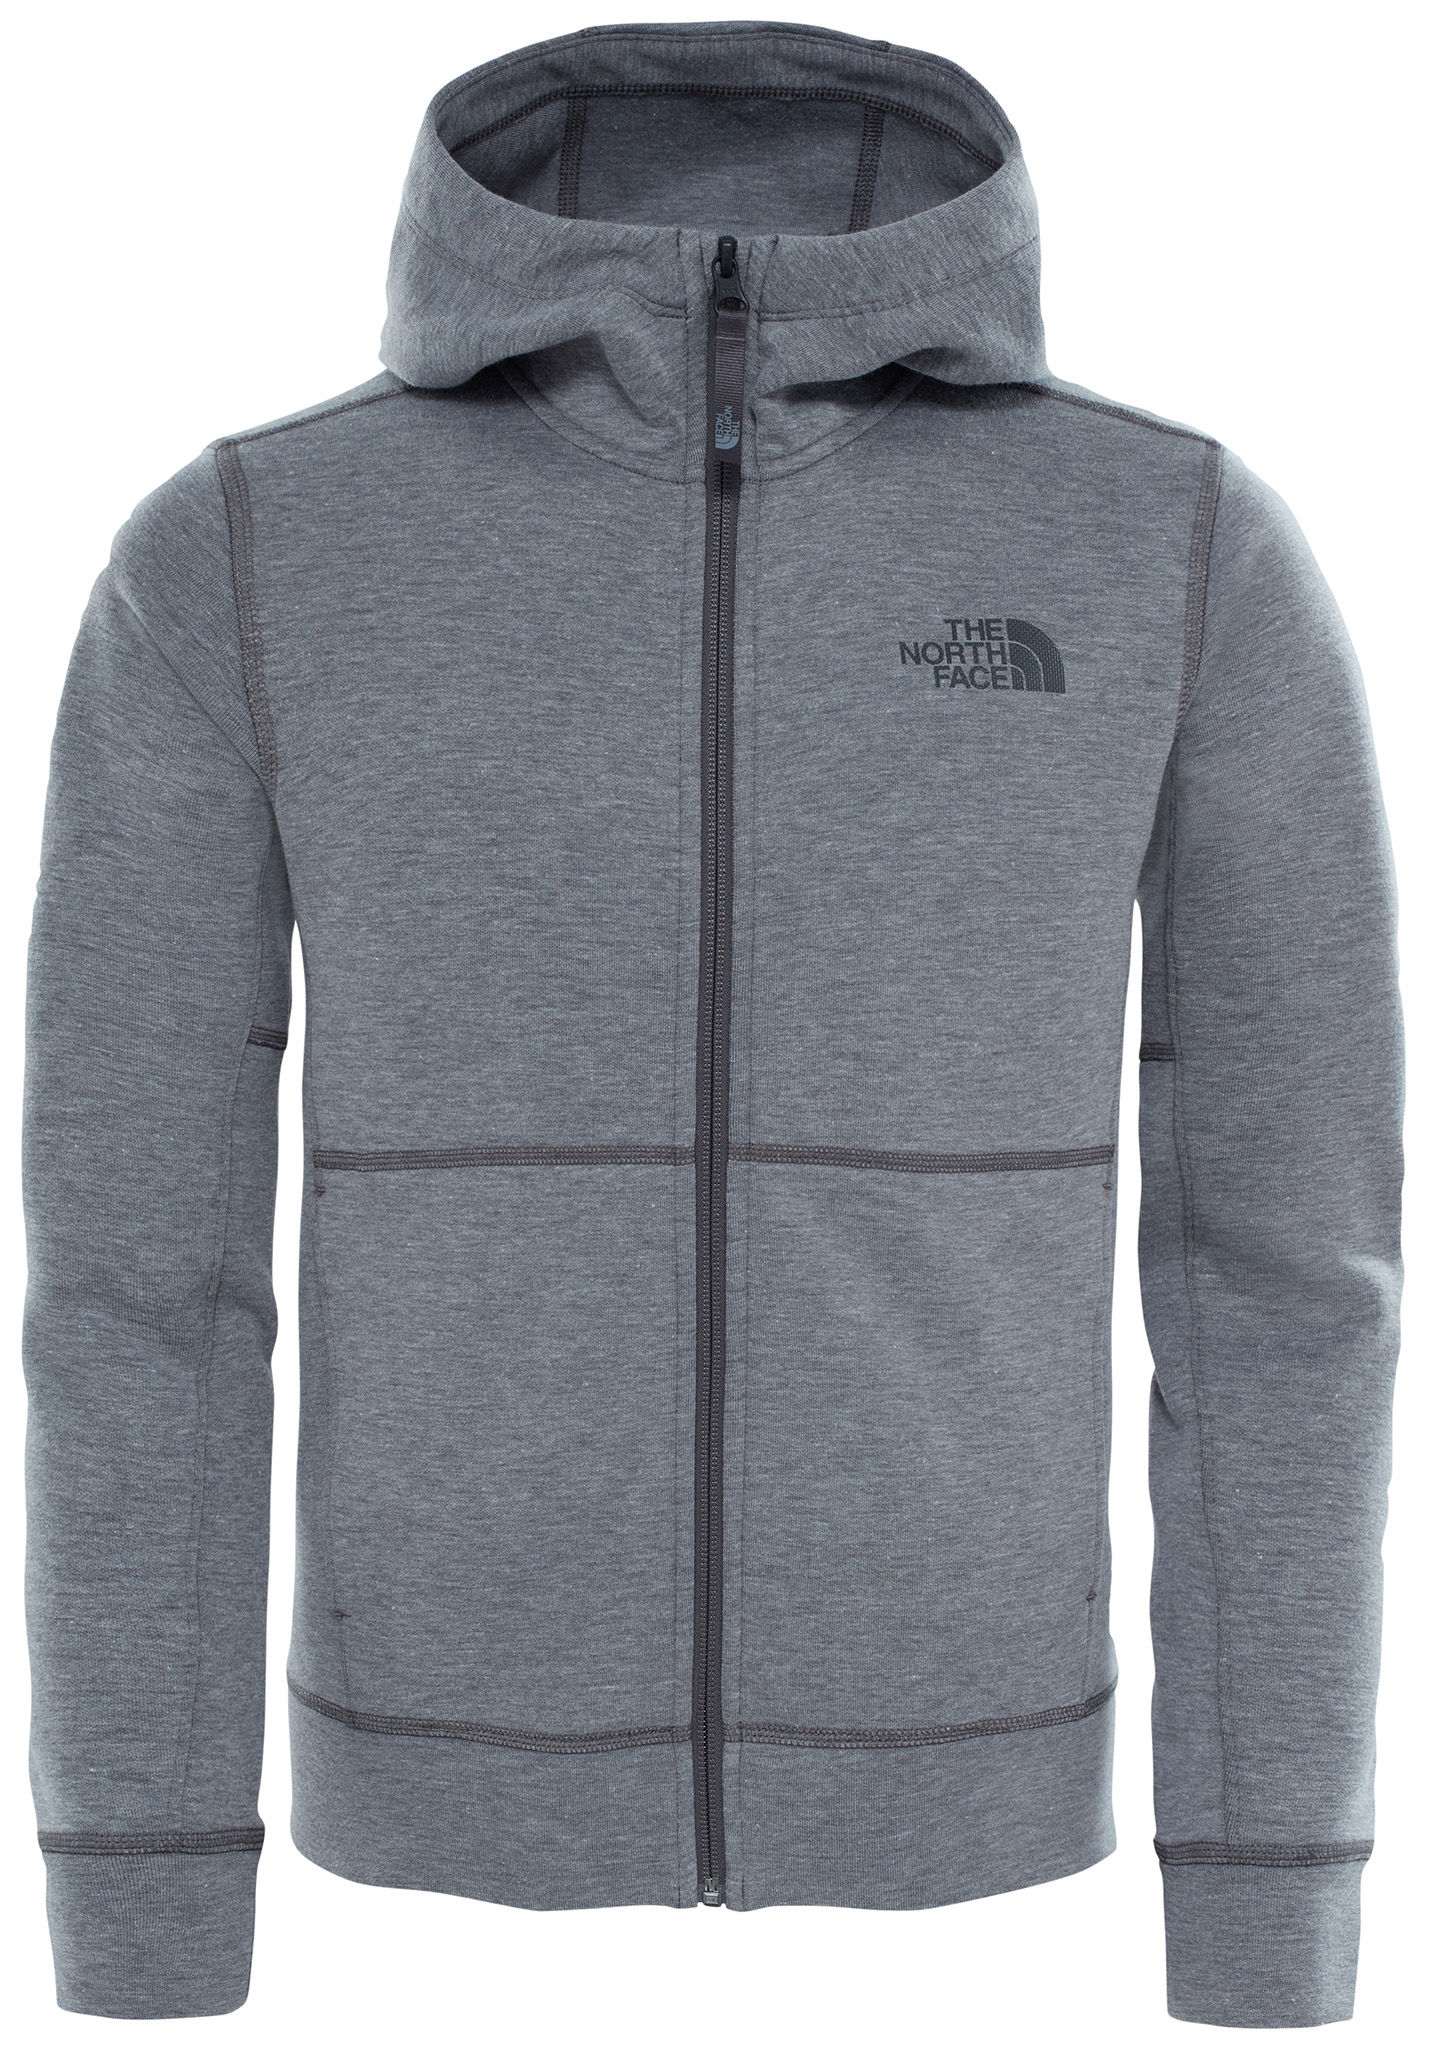 Garçon Gris Slacker Polaire Pour Veste North Planet Face The zWwTqY6nvW